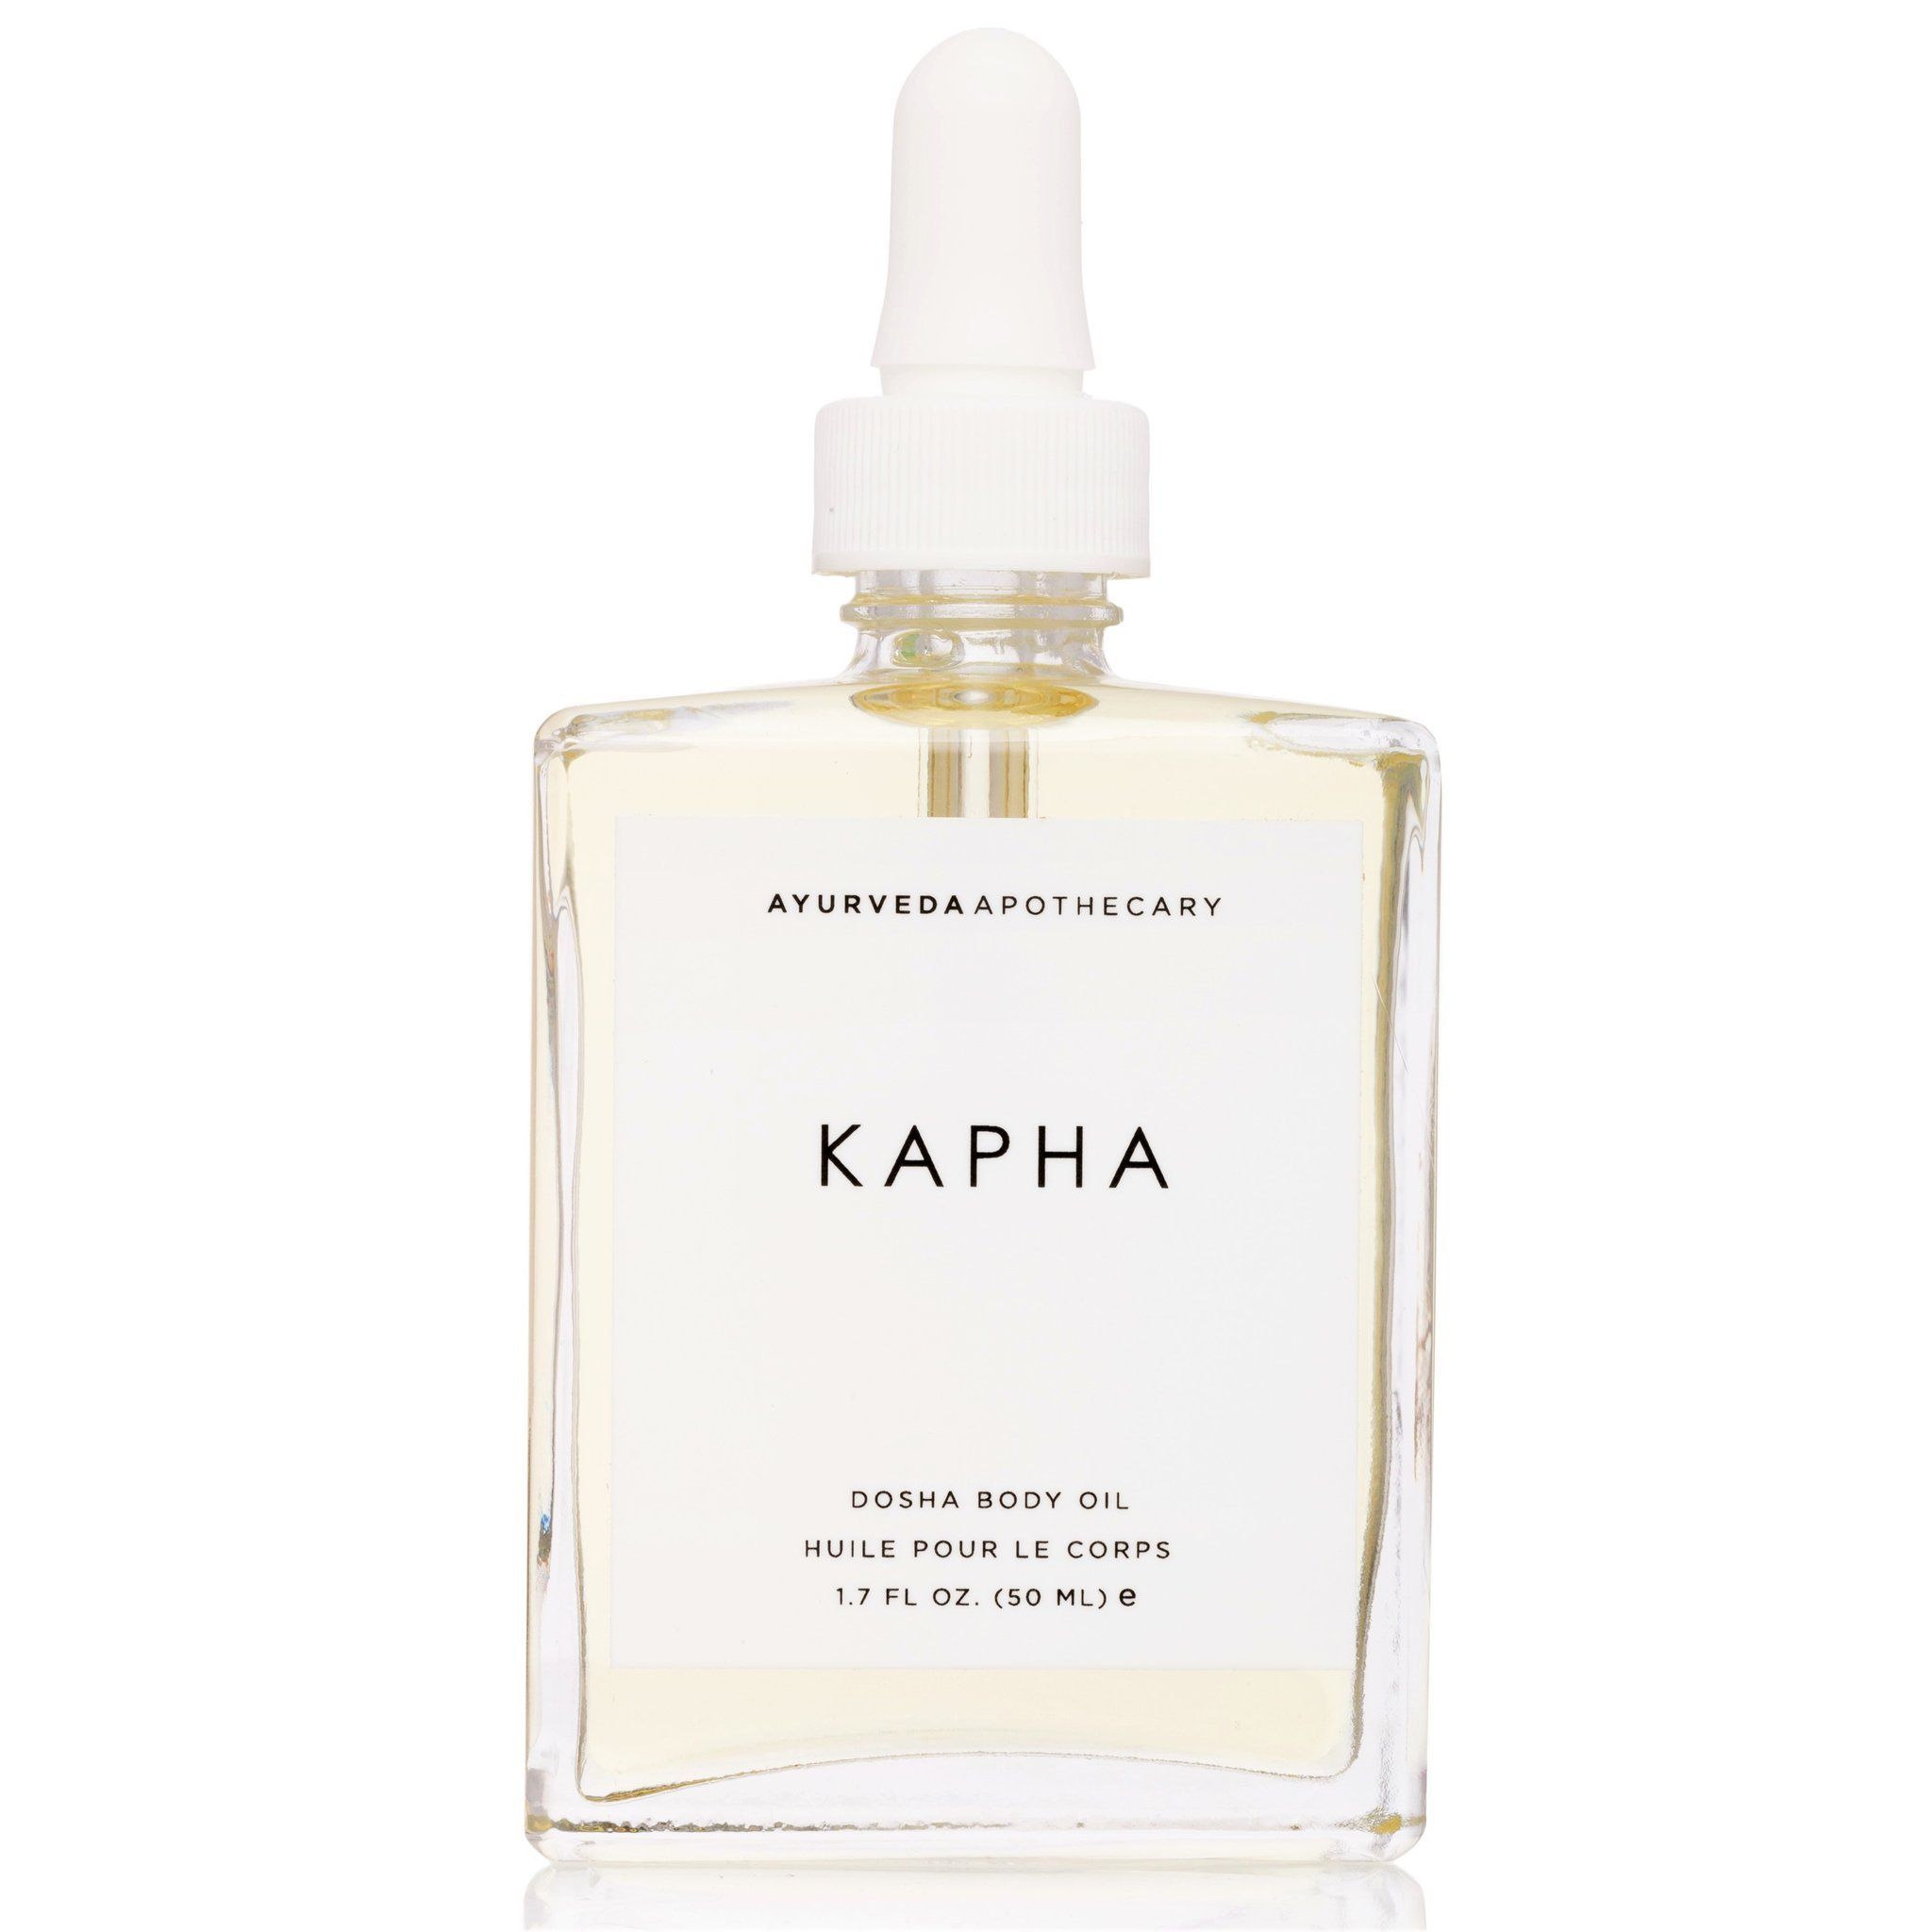 Find daily balance with this moisturizing body oil and perfume oil. Kapha Dosha Characteristics + Balance: Kapha personifies heavy, slow, cool, oily, soft and viscous characteristics. Ruled by the elements of water and earth, this dosha expresses calmness, smoothness and steadiness when in balance. When out of balance kapha is prone to sluggishness, immovability, and attachment. The body oil balances kapha by using herbs and oils that are warming, light and awakening to inspire forward momentum.